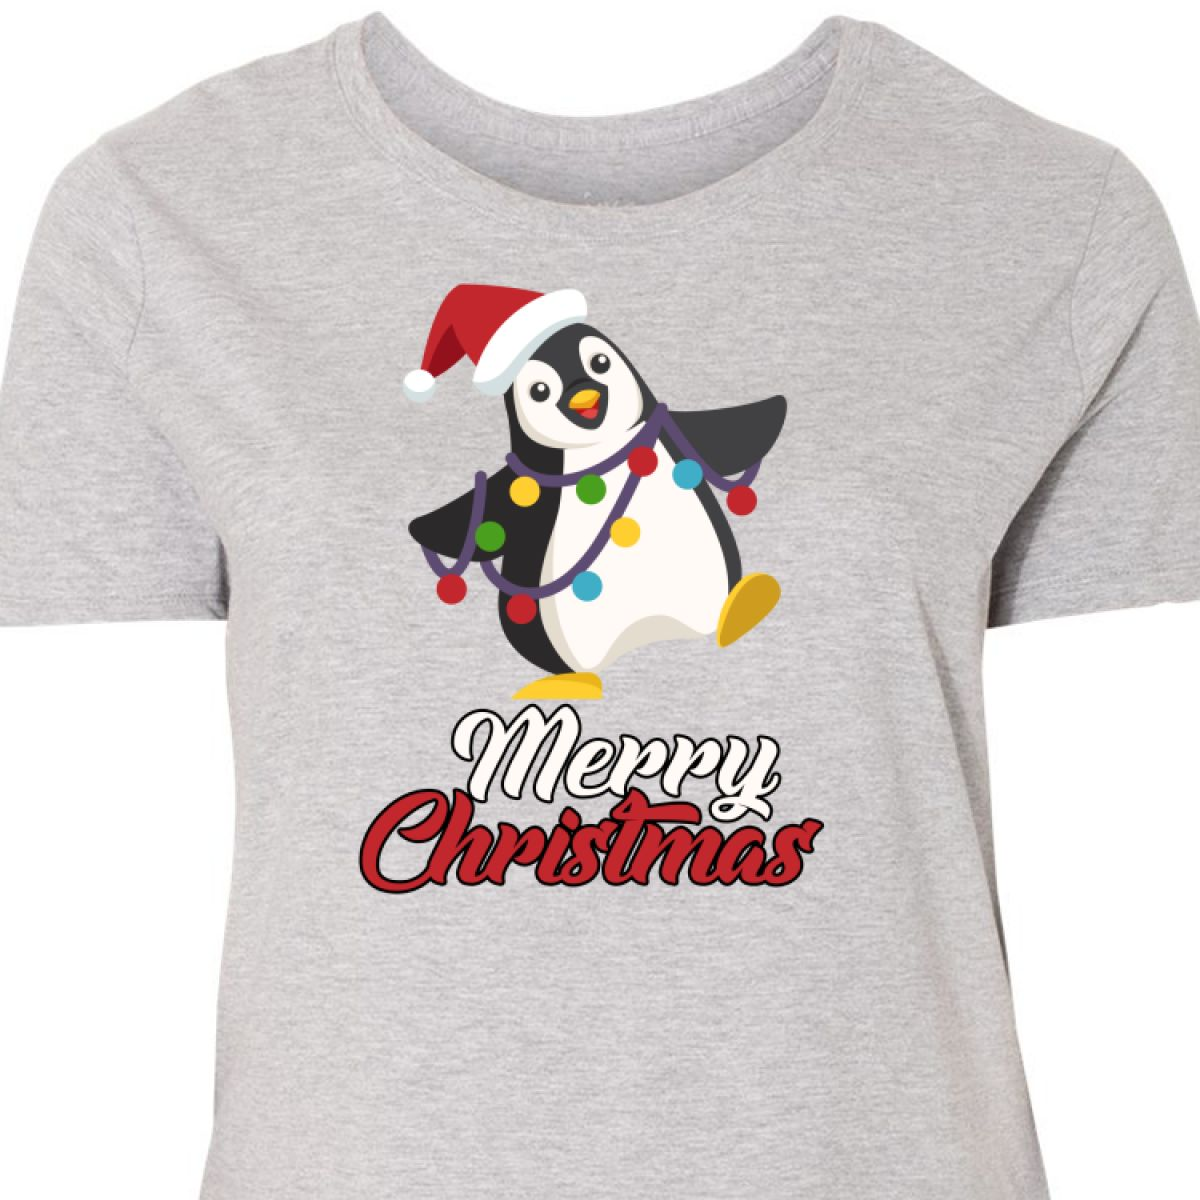 ff6368a8818 Inktastic Merry Christmas Penguin Women s Plus Size T-Shirt Xmas ...